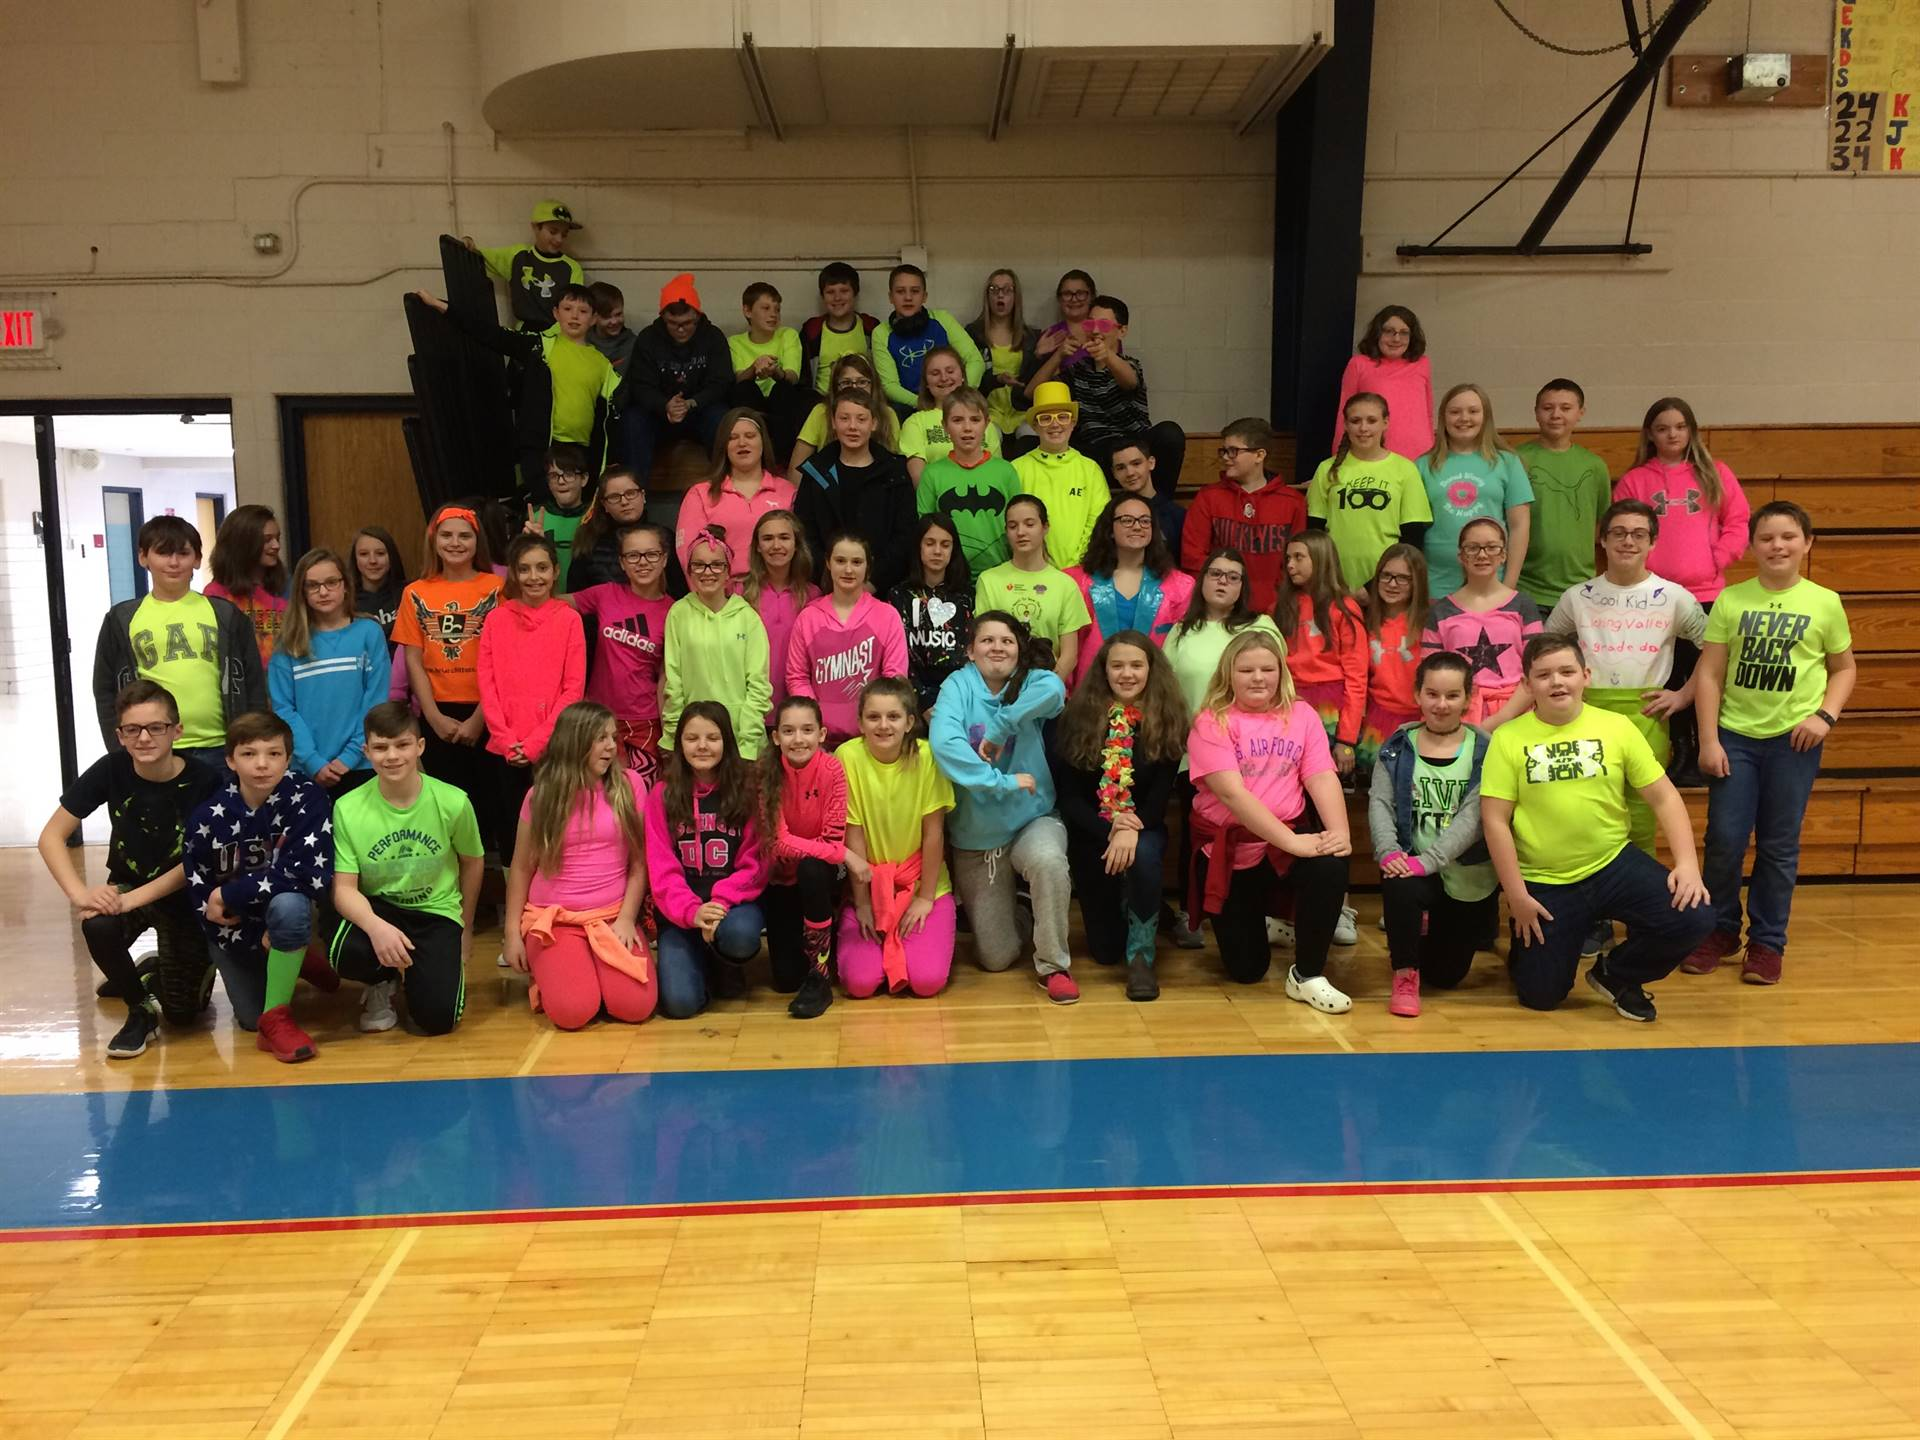 Penny War Against Cancer - Wear Neon